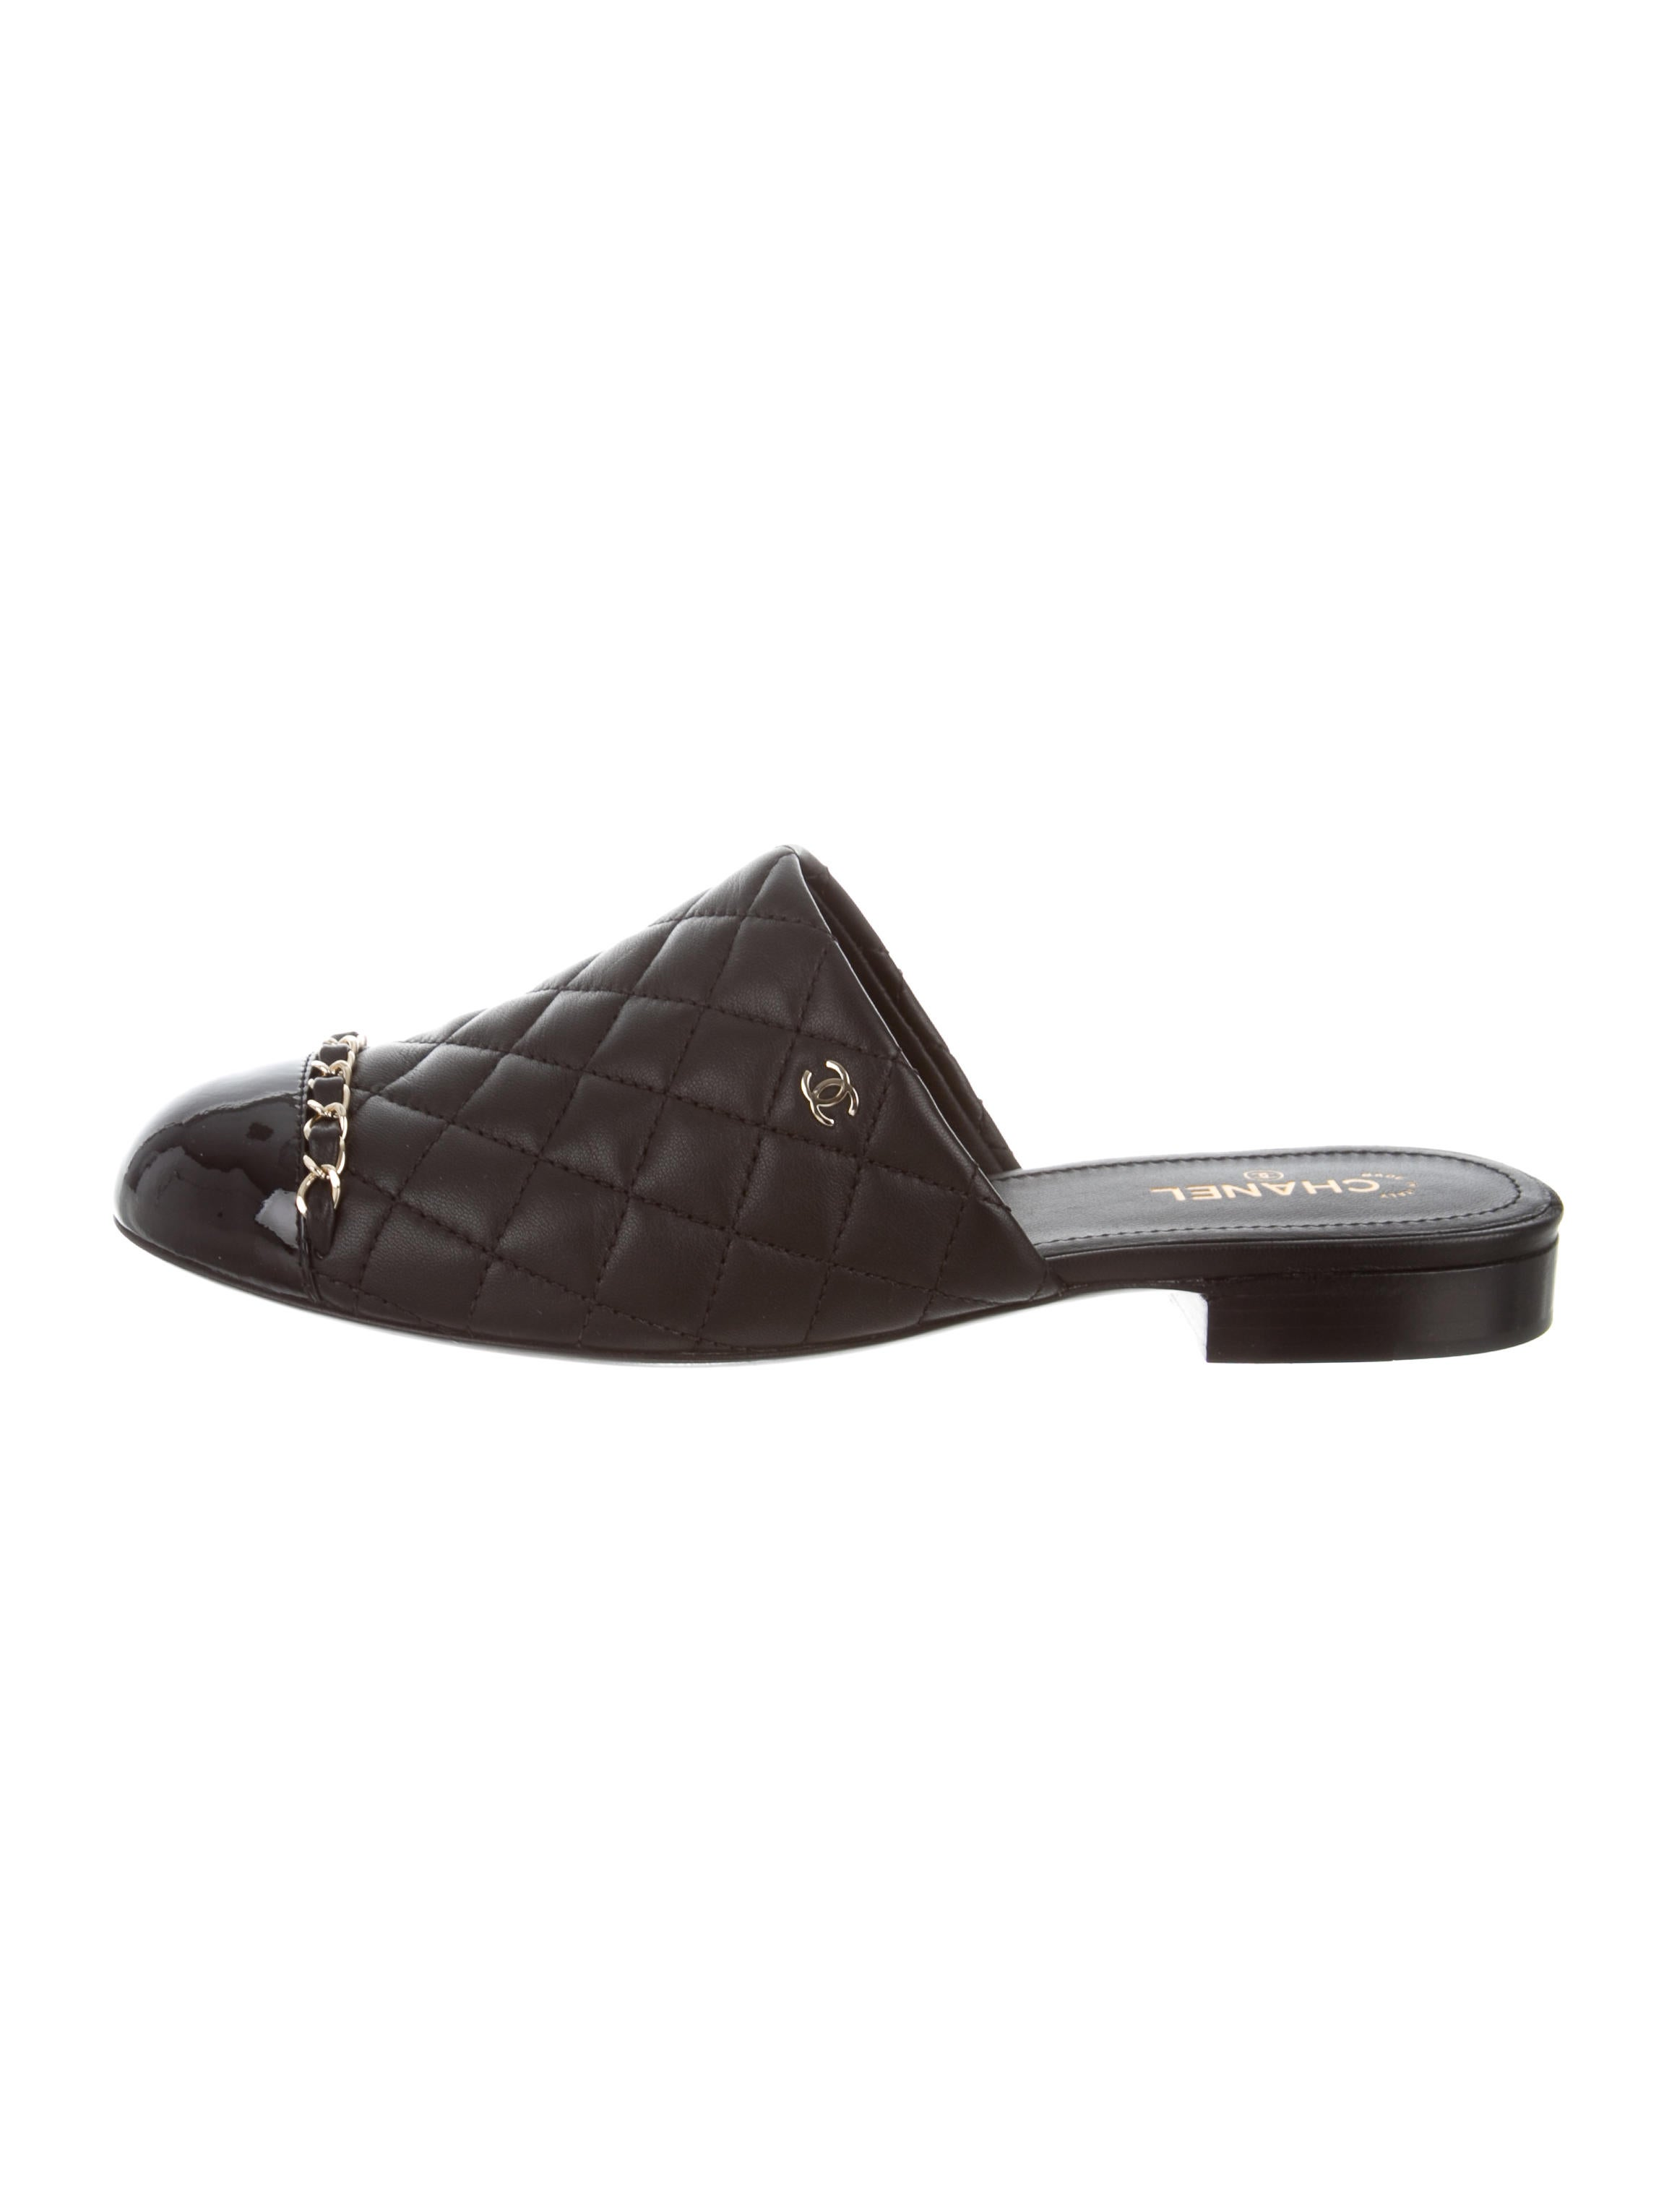 bac63417d23e Chanel 2017 Quilted Cap-Toe Mules - Shoes - CHA286918